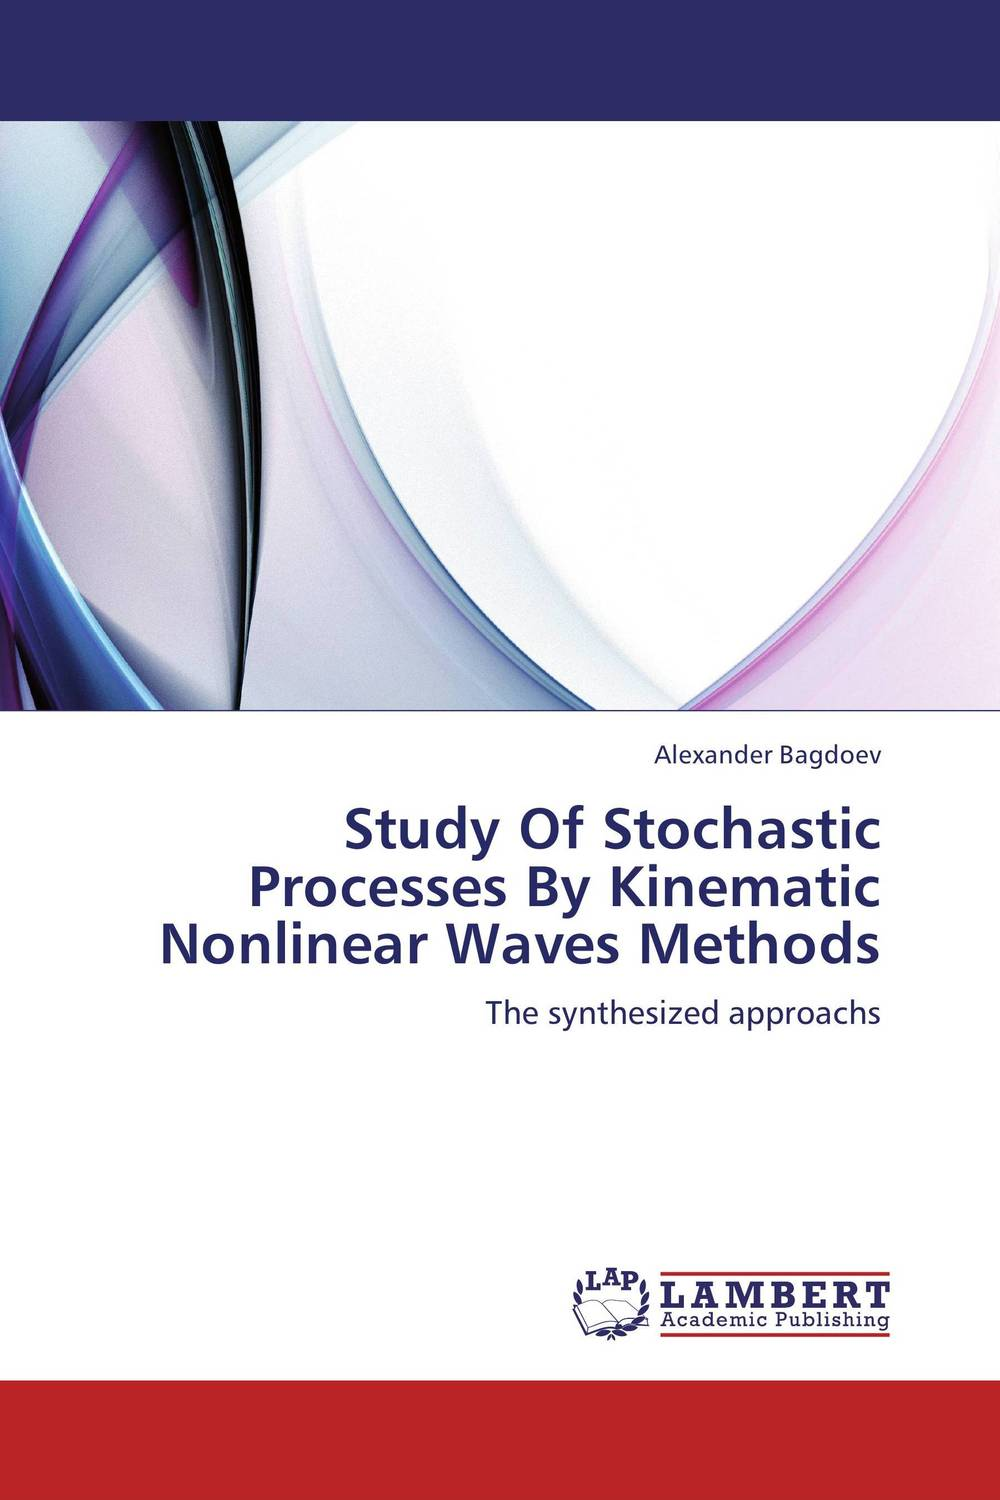 Study Of Stochastic Processes By Kinematic Nonlinear Waves Methods